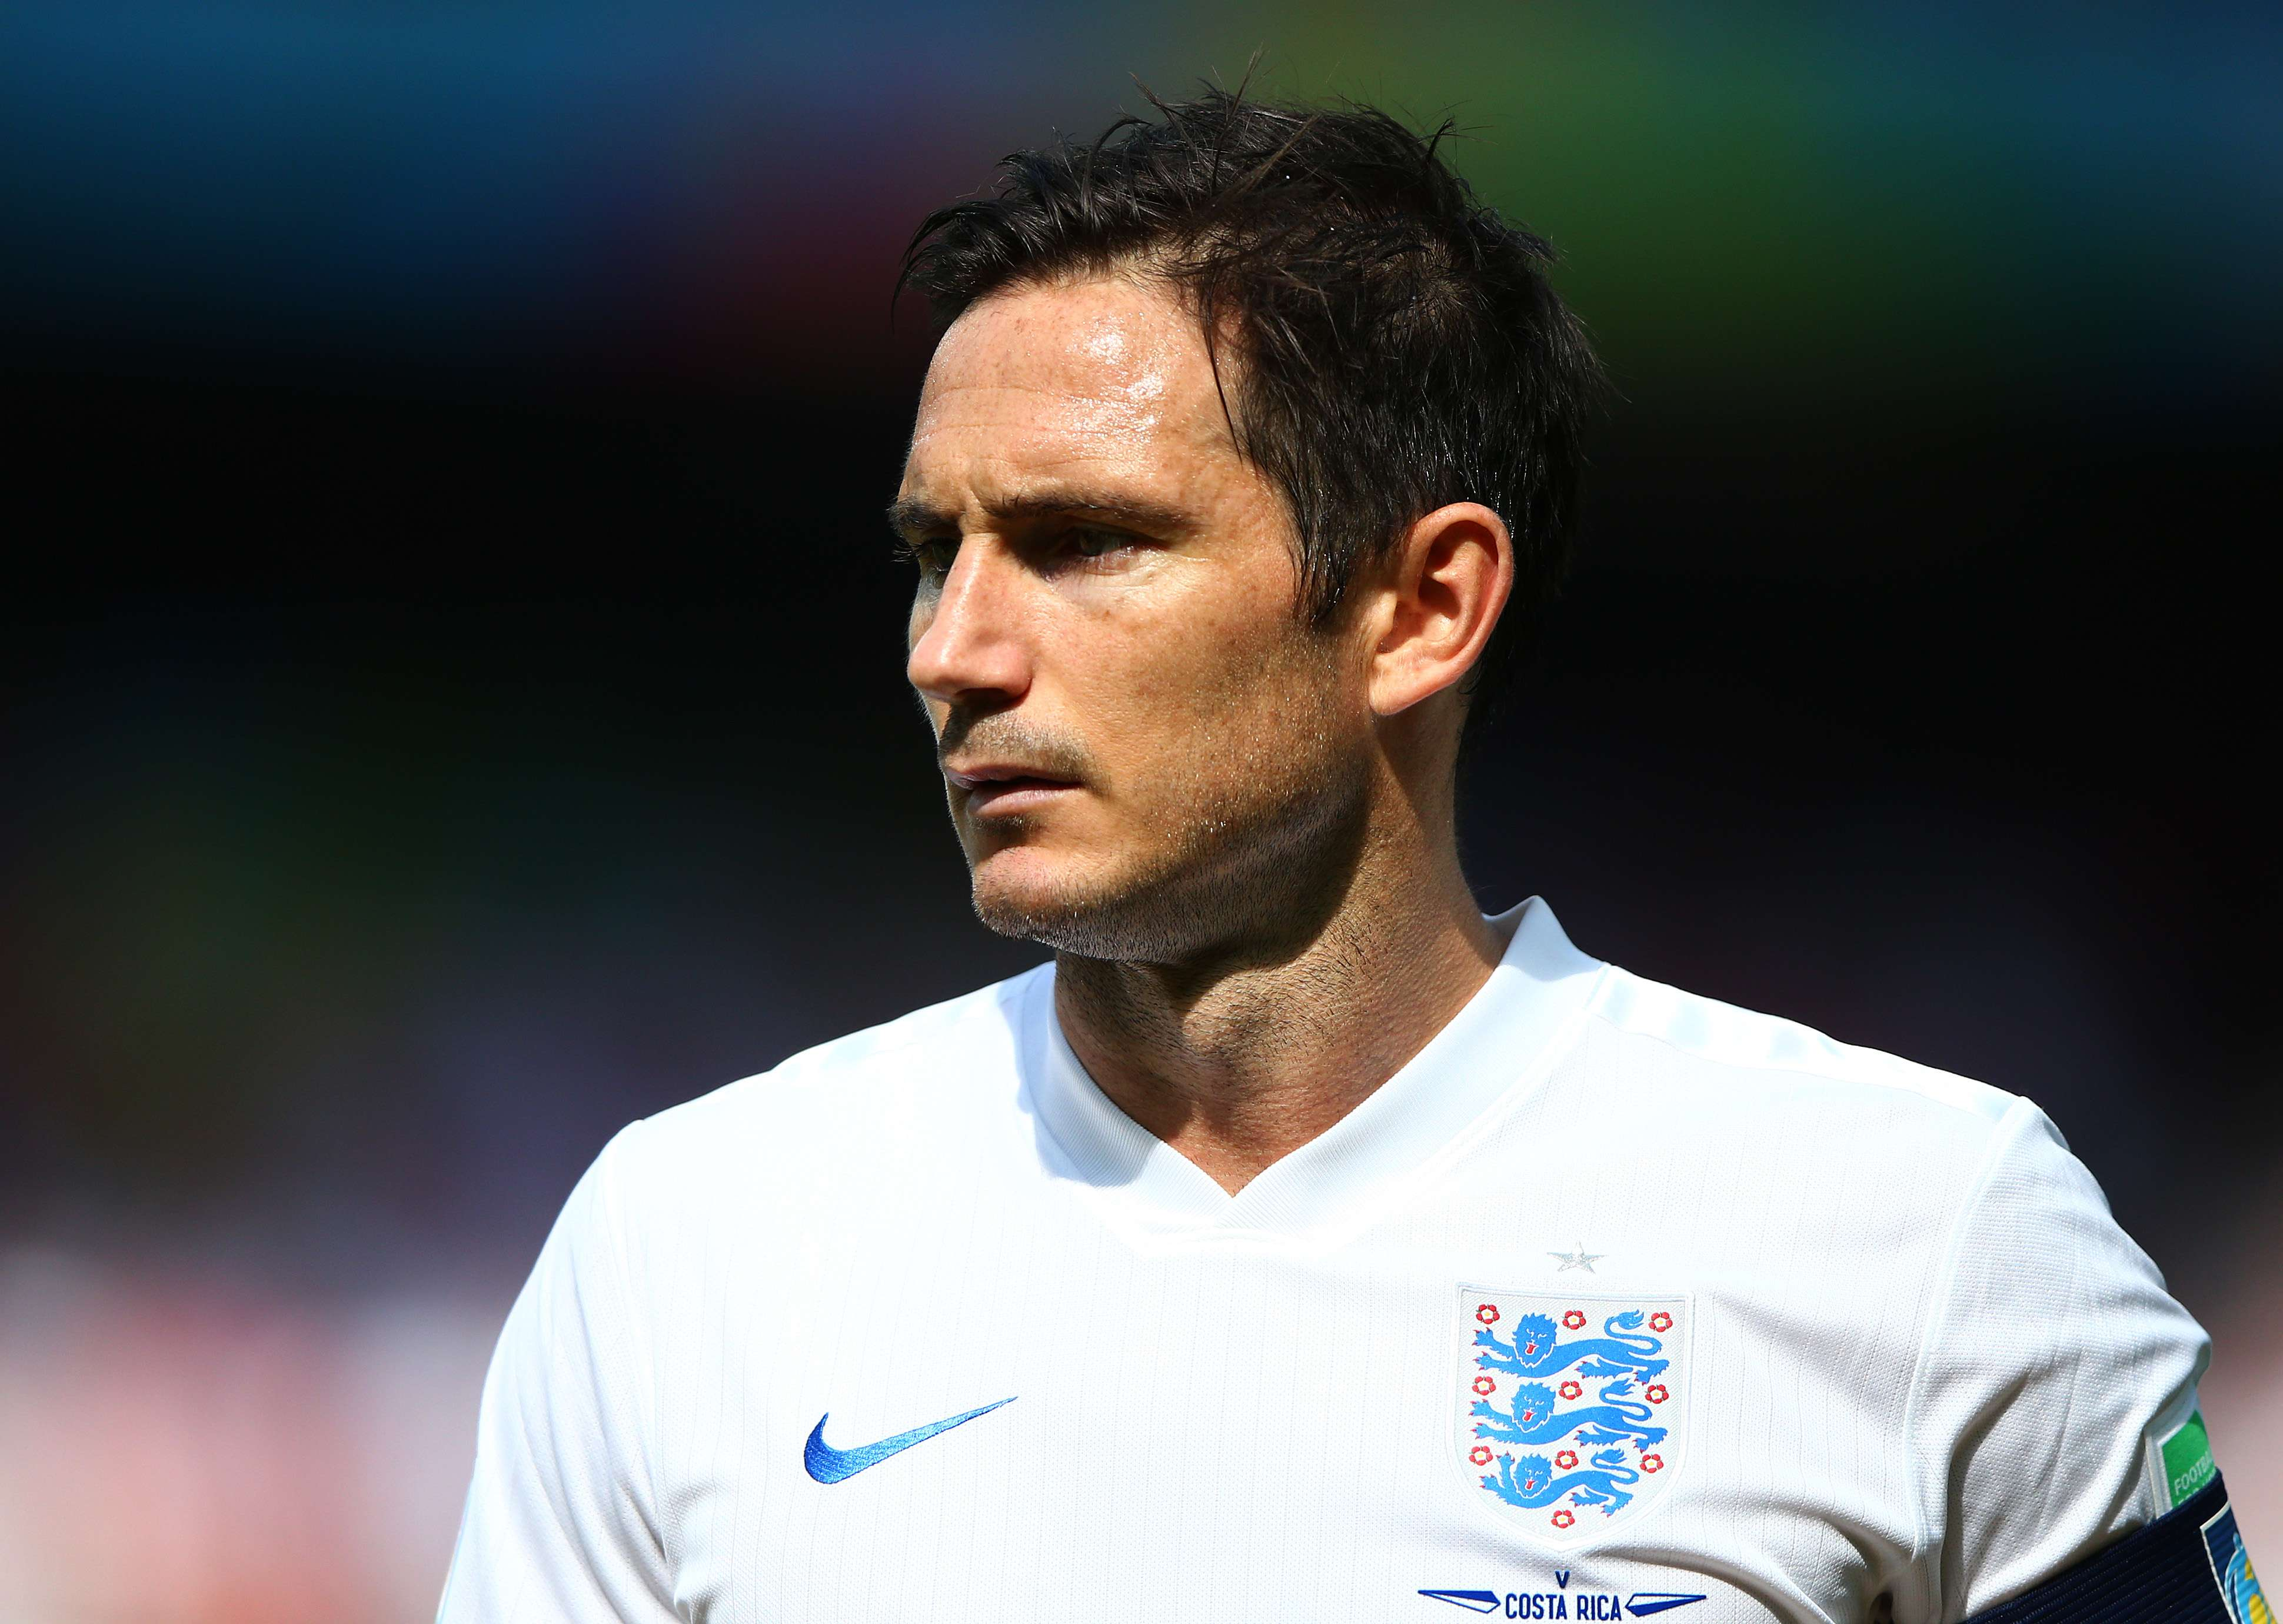 Lampard joins New York City FC in MLS